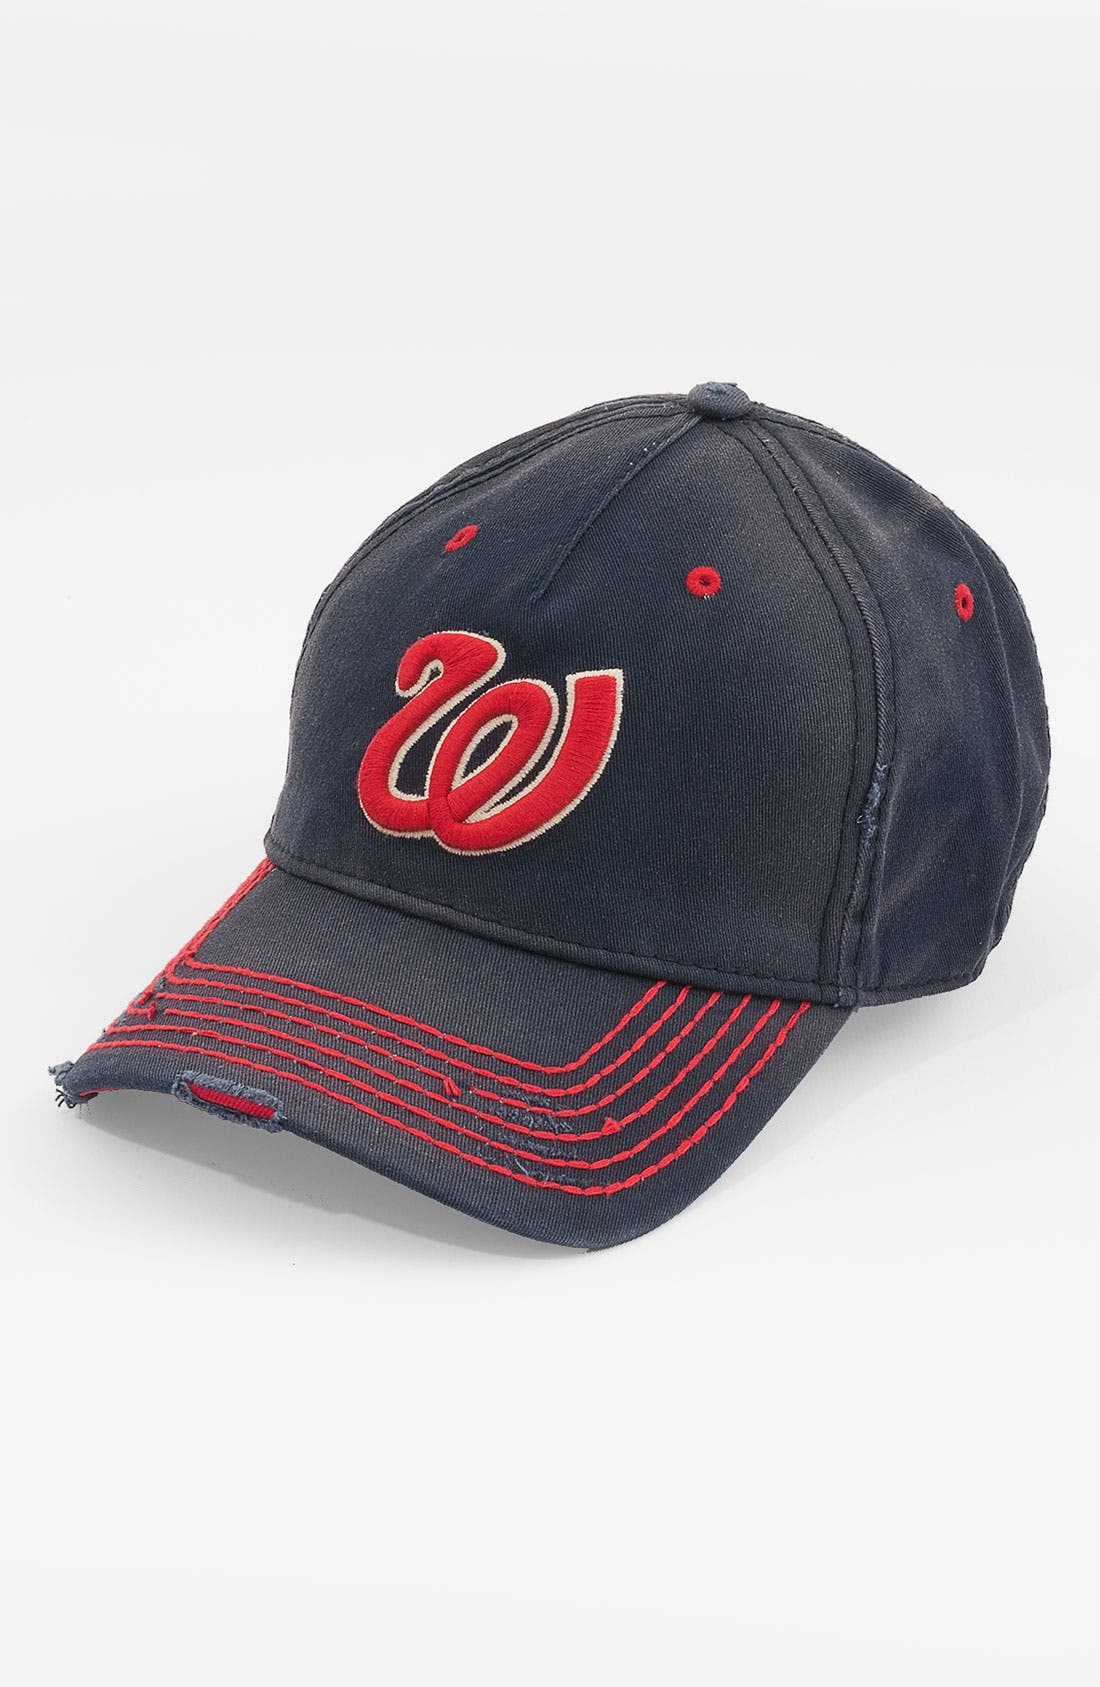 Alternate Image 1 Selected - American Needle 'Washington Senators' Baseball Cap